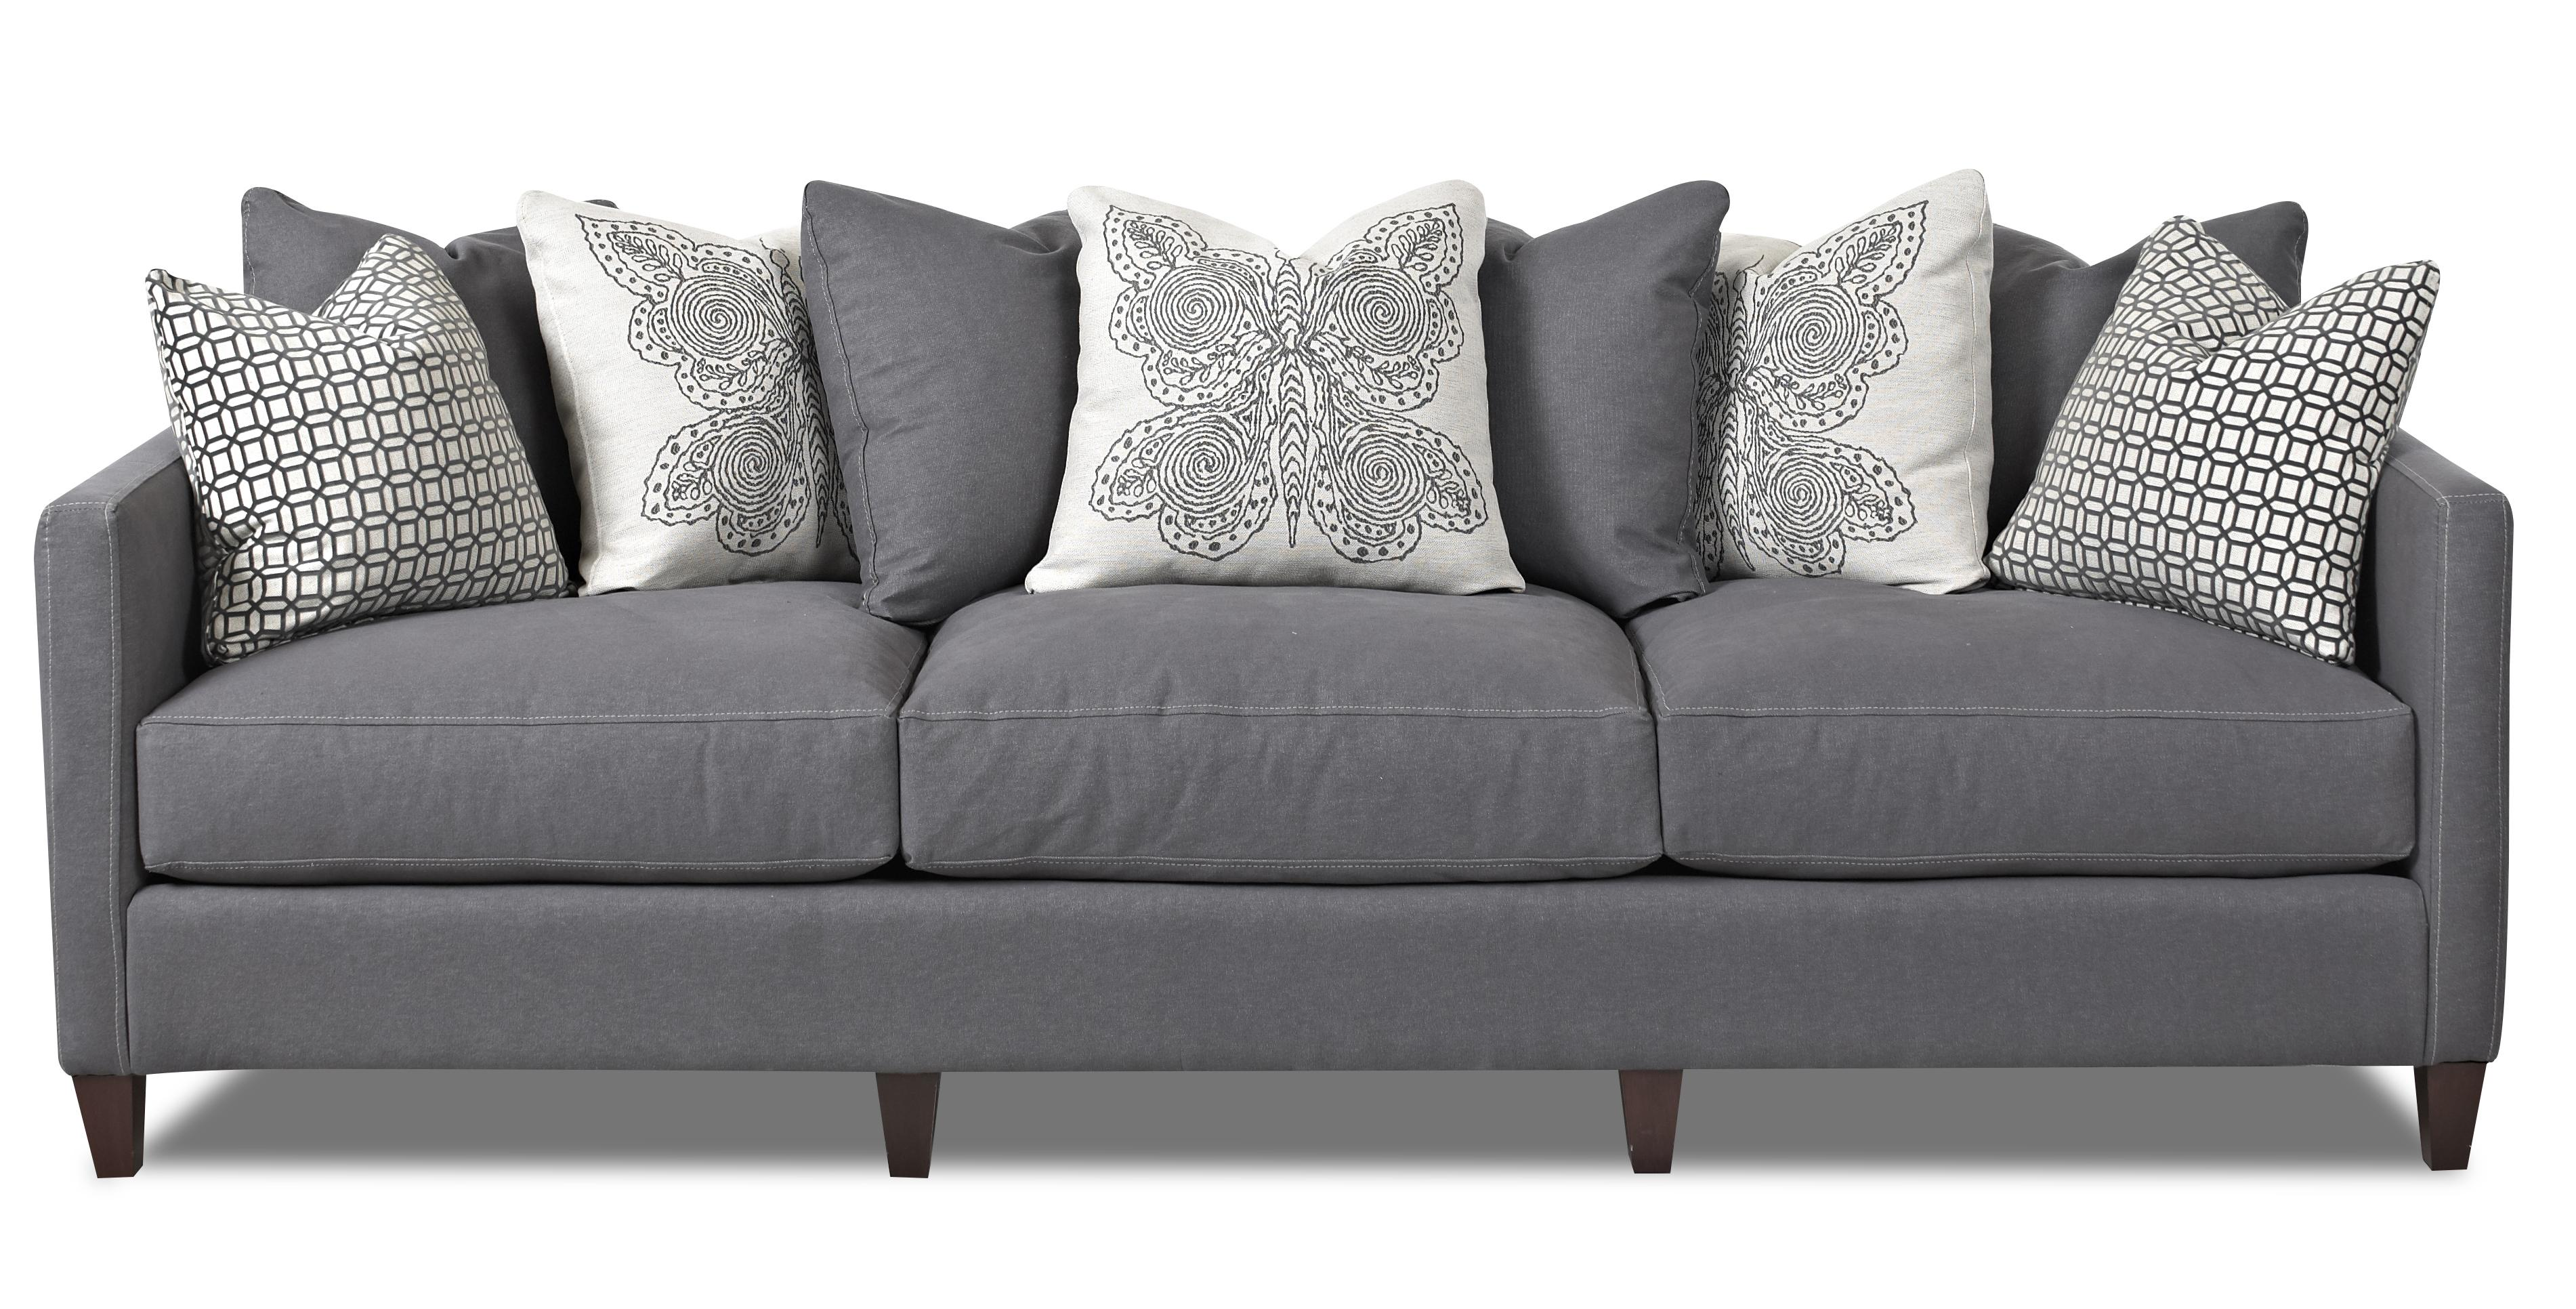 And Sofa Jordan Large 3 Cushion Tuxedo Arm Sofa With Scatterback By Klaussner At Wayside Furniture